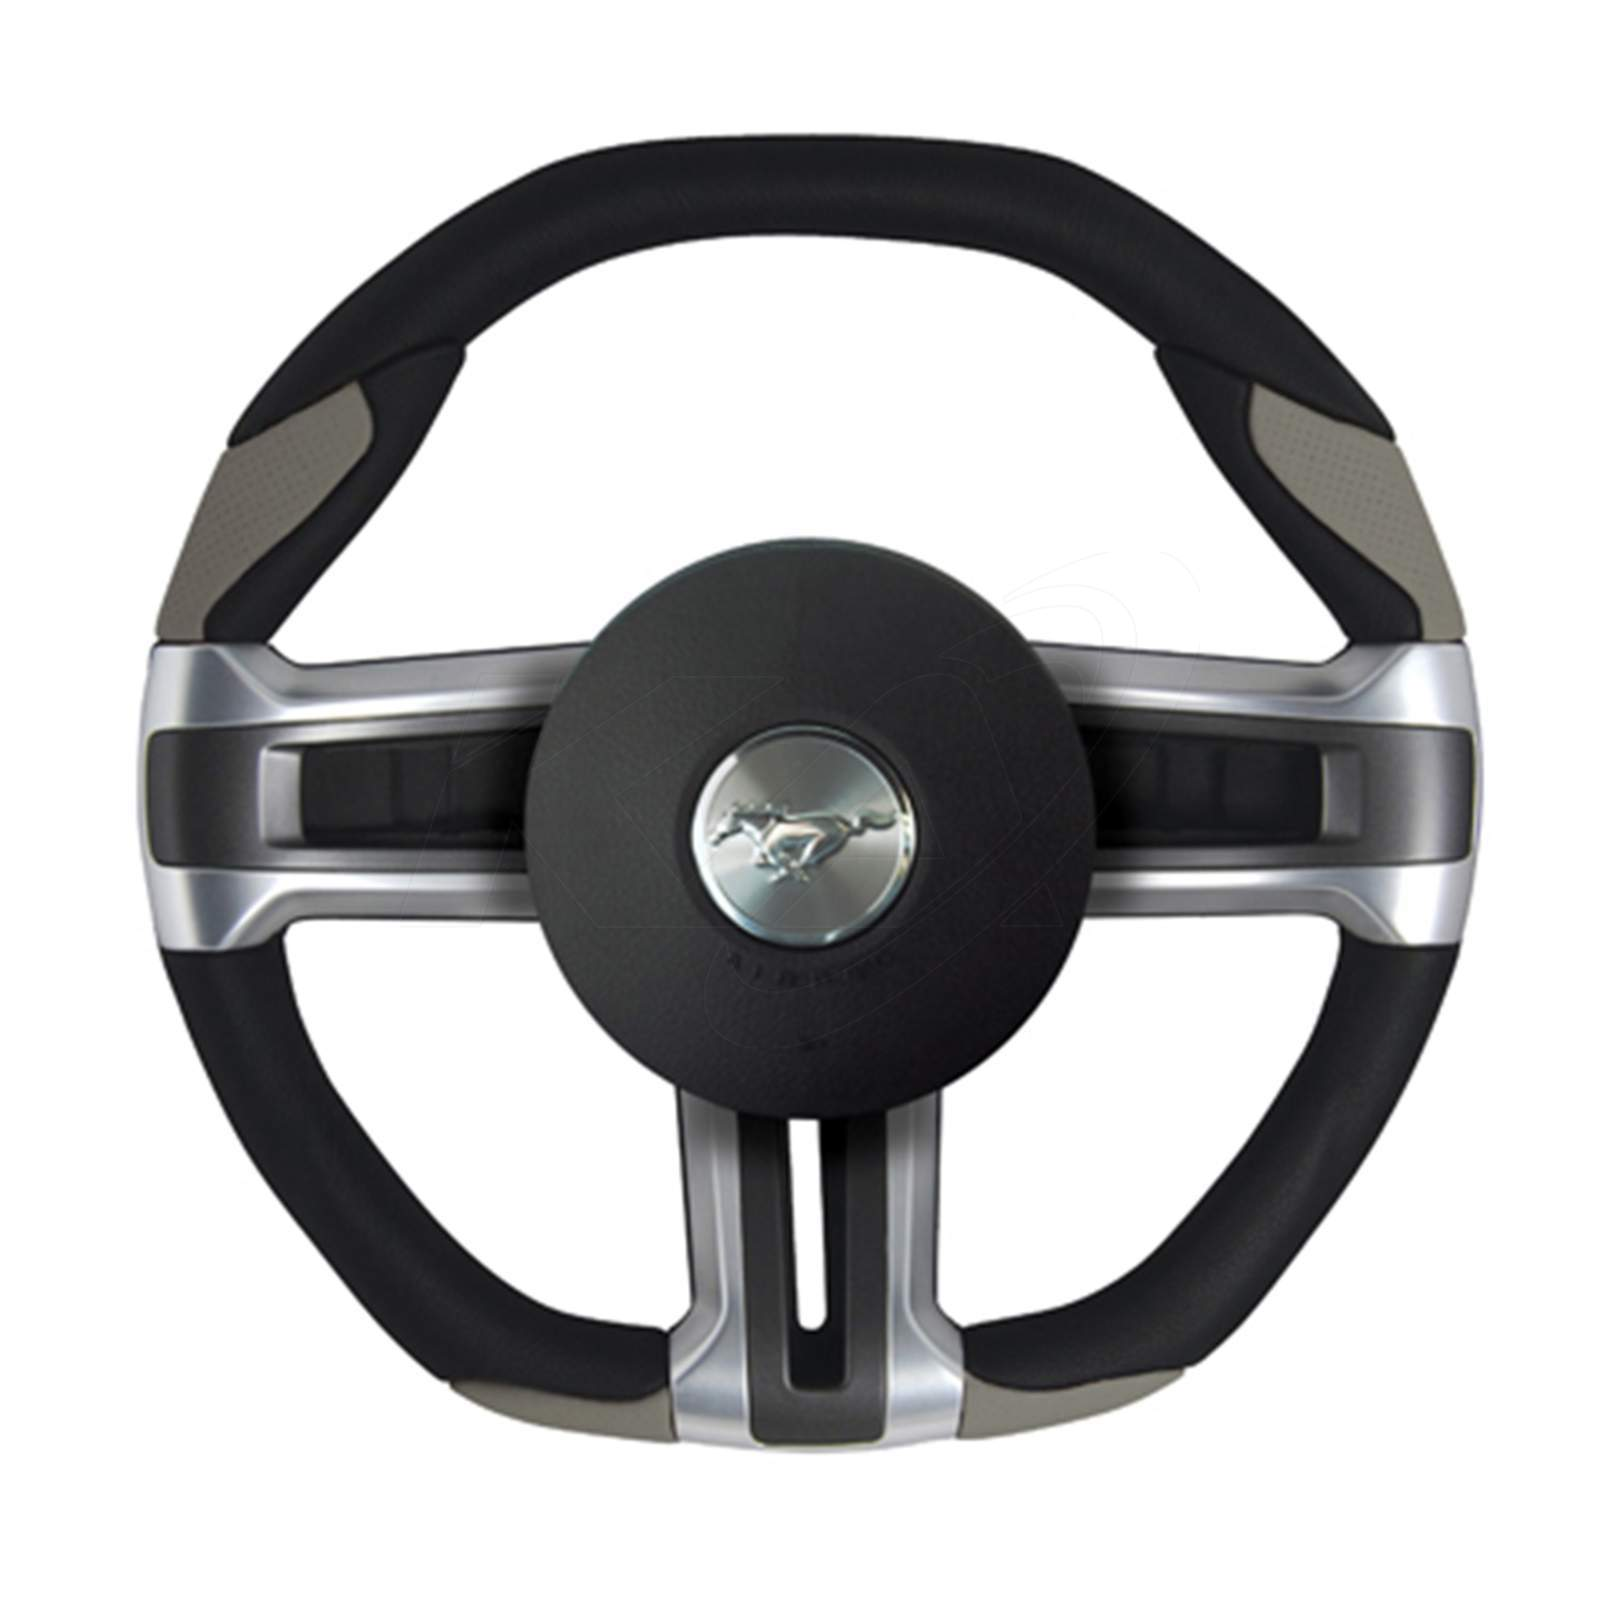 Revolution Style OEM Airbag Replacement Steering Wheel